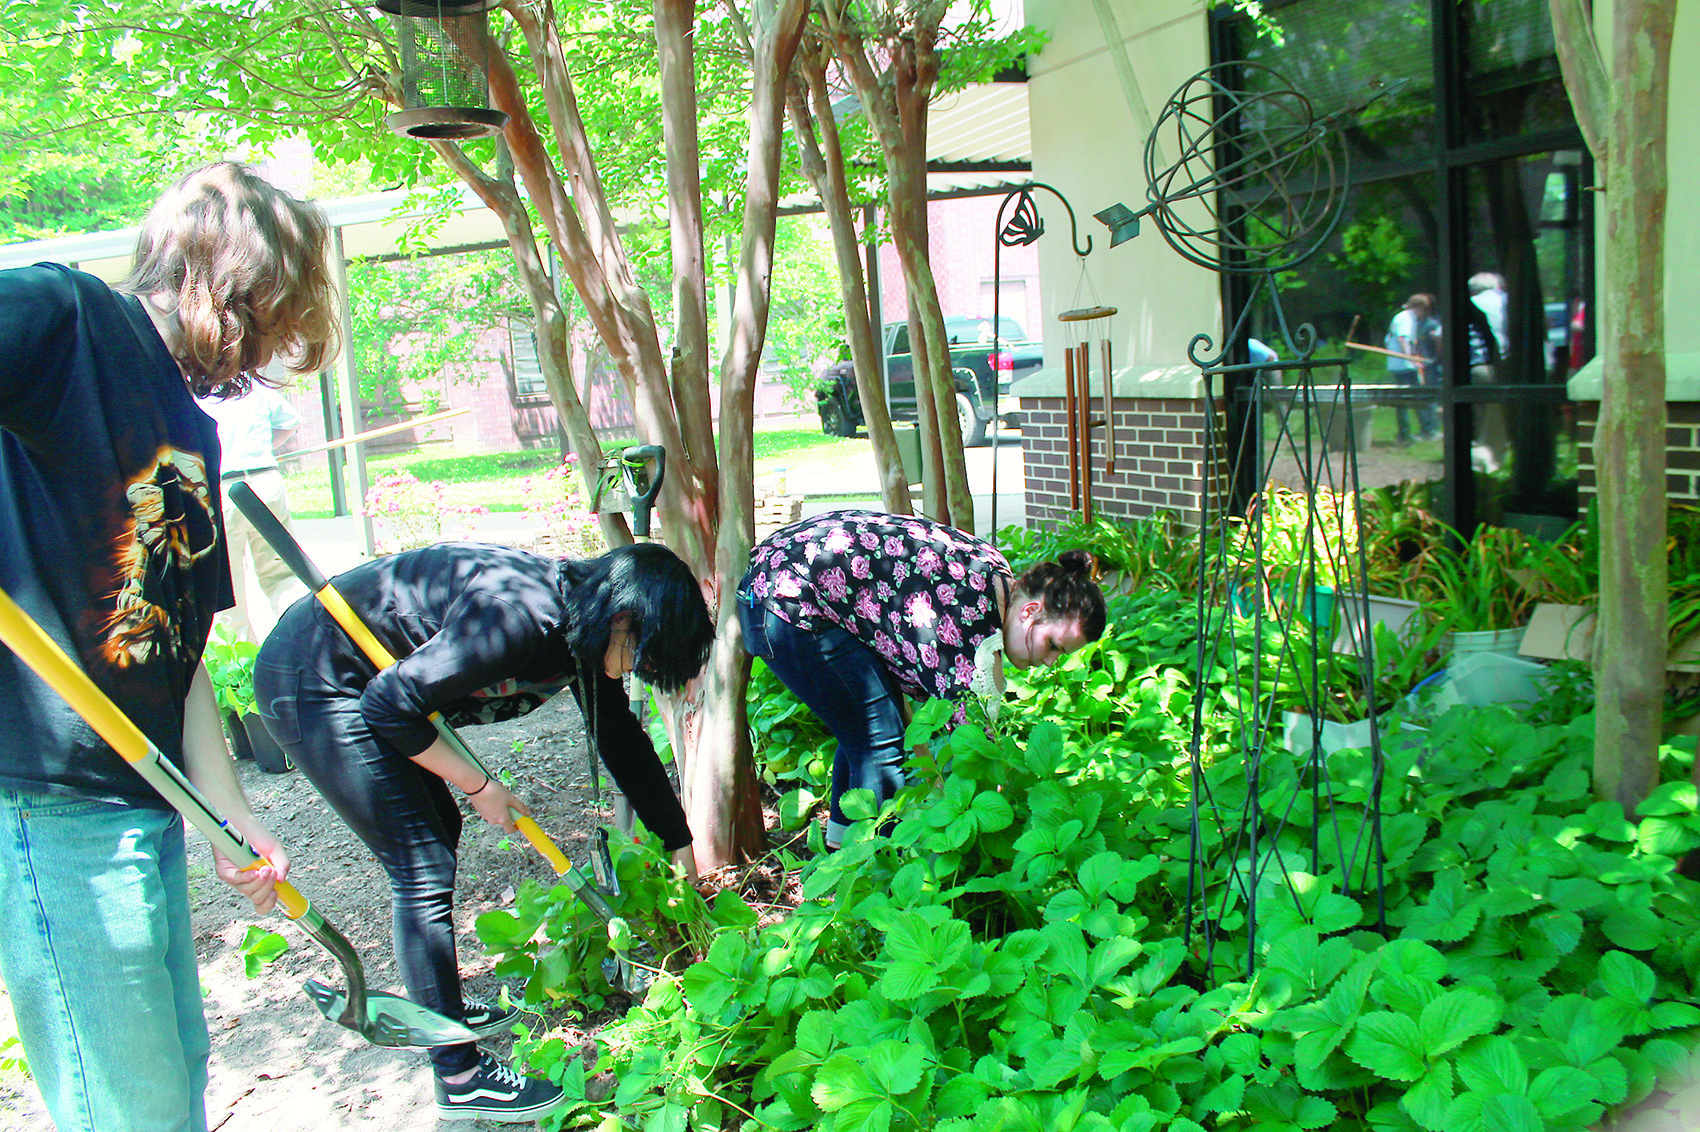 Students from the Walker County Center of Technology's landscape and horticulture science class were at the Walker Cancer Care Center several days this week working in the garden maintained by the Jasper Herb Society. The garden, which was established 16 years ago, includes a variety of herbs and flowers as well as a large strawberry patch. It is located outside the windows of the Center's chemotherapy floor so that patients can look out on a serene environment while receiving treatment. Herb Society member Nora Estill said the work this week is part of a project to establish raised beds in the garden.